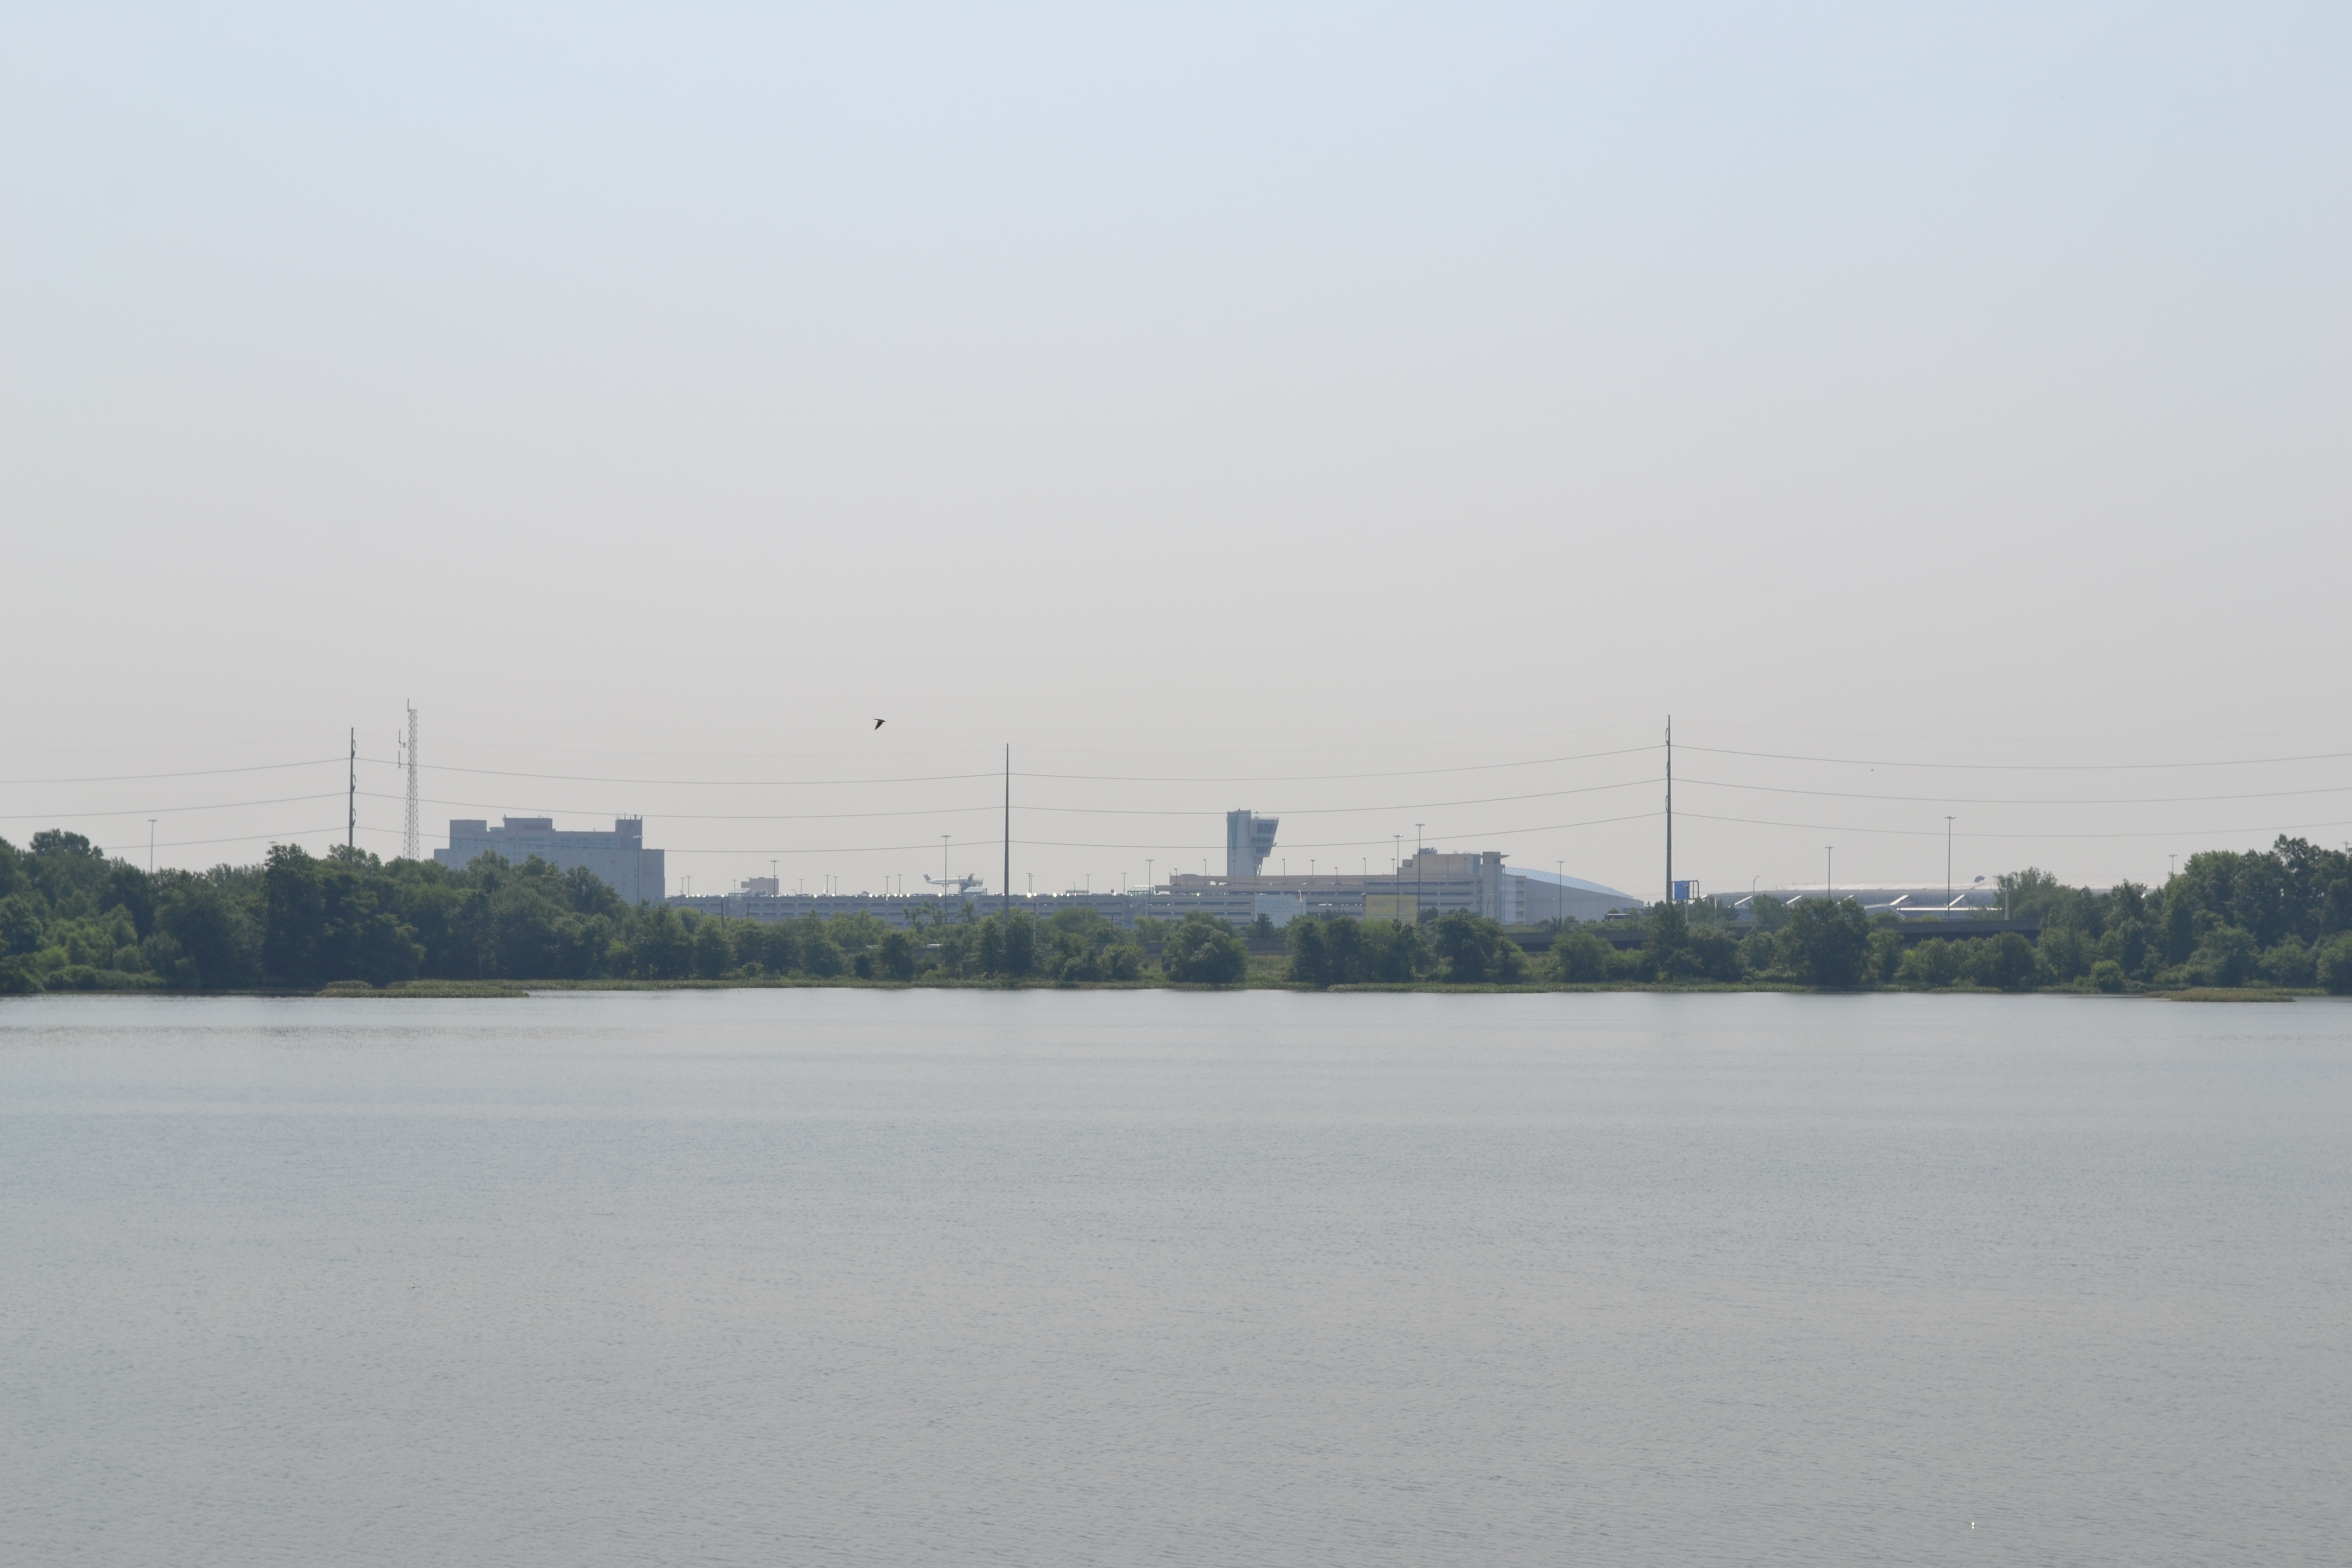 At one end of impoundment the Philadelphia International Airport's buildings stand above the tree line